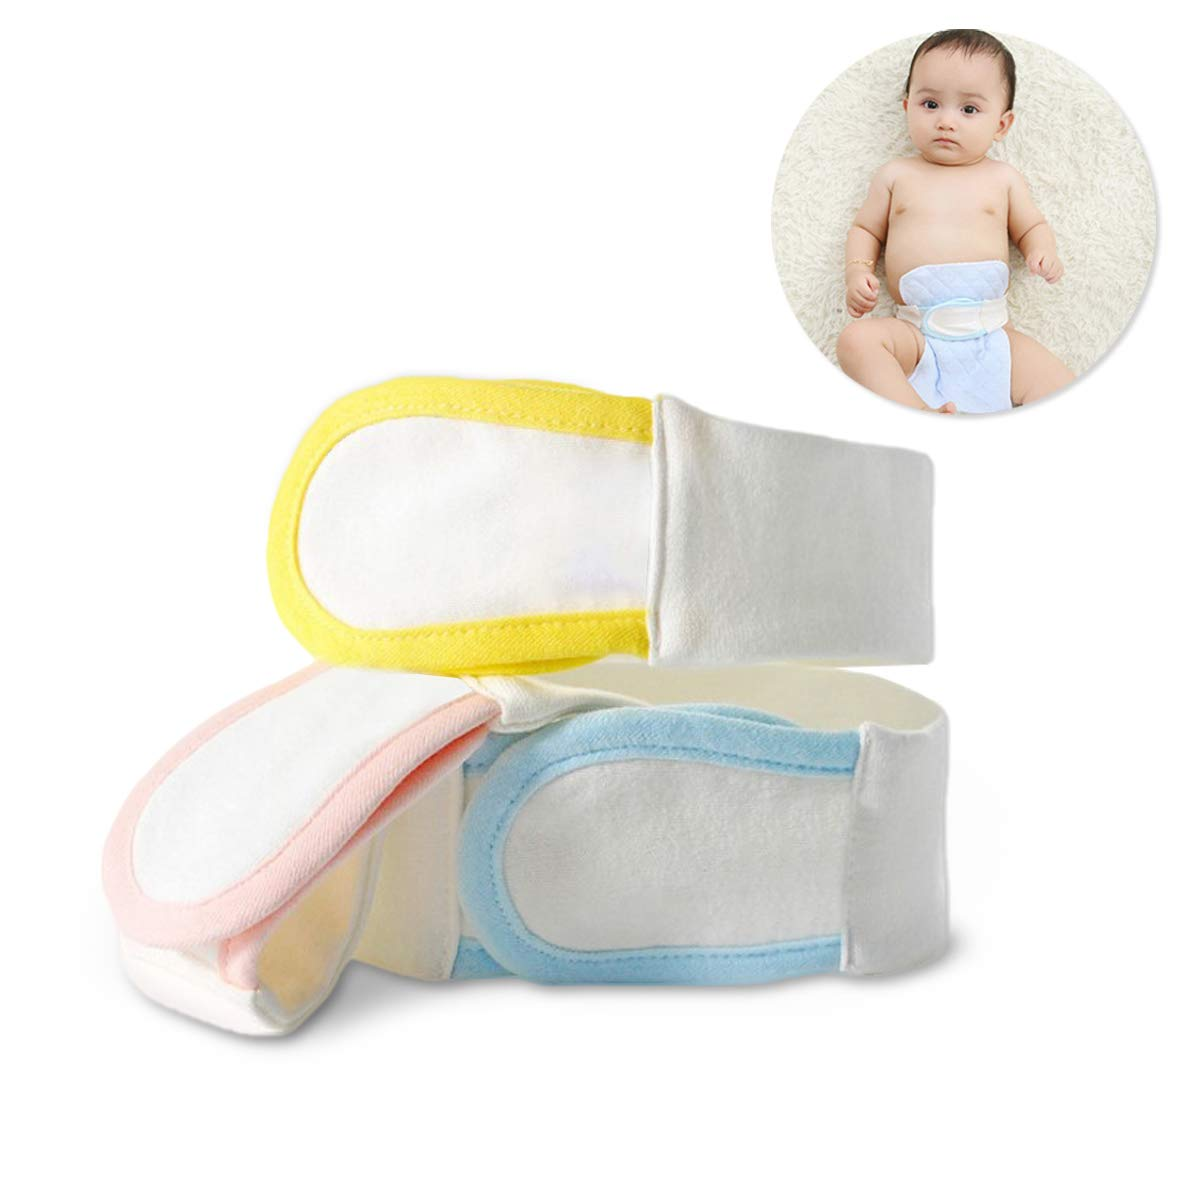 Diaper Belt Baby,Diaper Fasteners,Cotton Reusable Baby Cloth Diaper Fasteners Adjustable Newborn Nappy Fixed Belt(3 Pack) by Ailuck